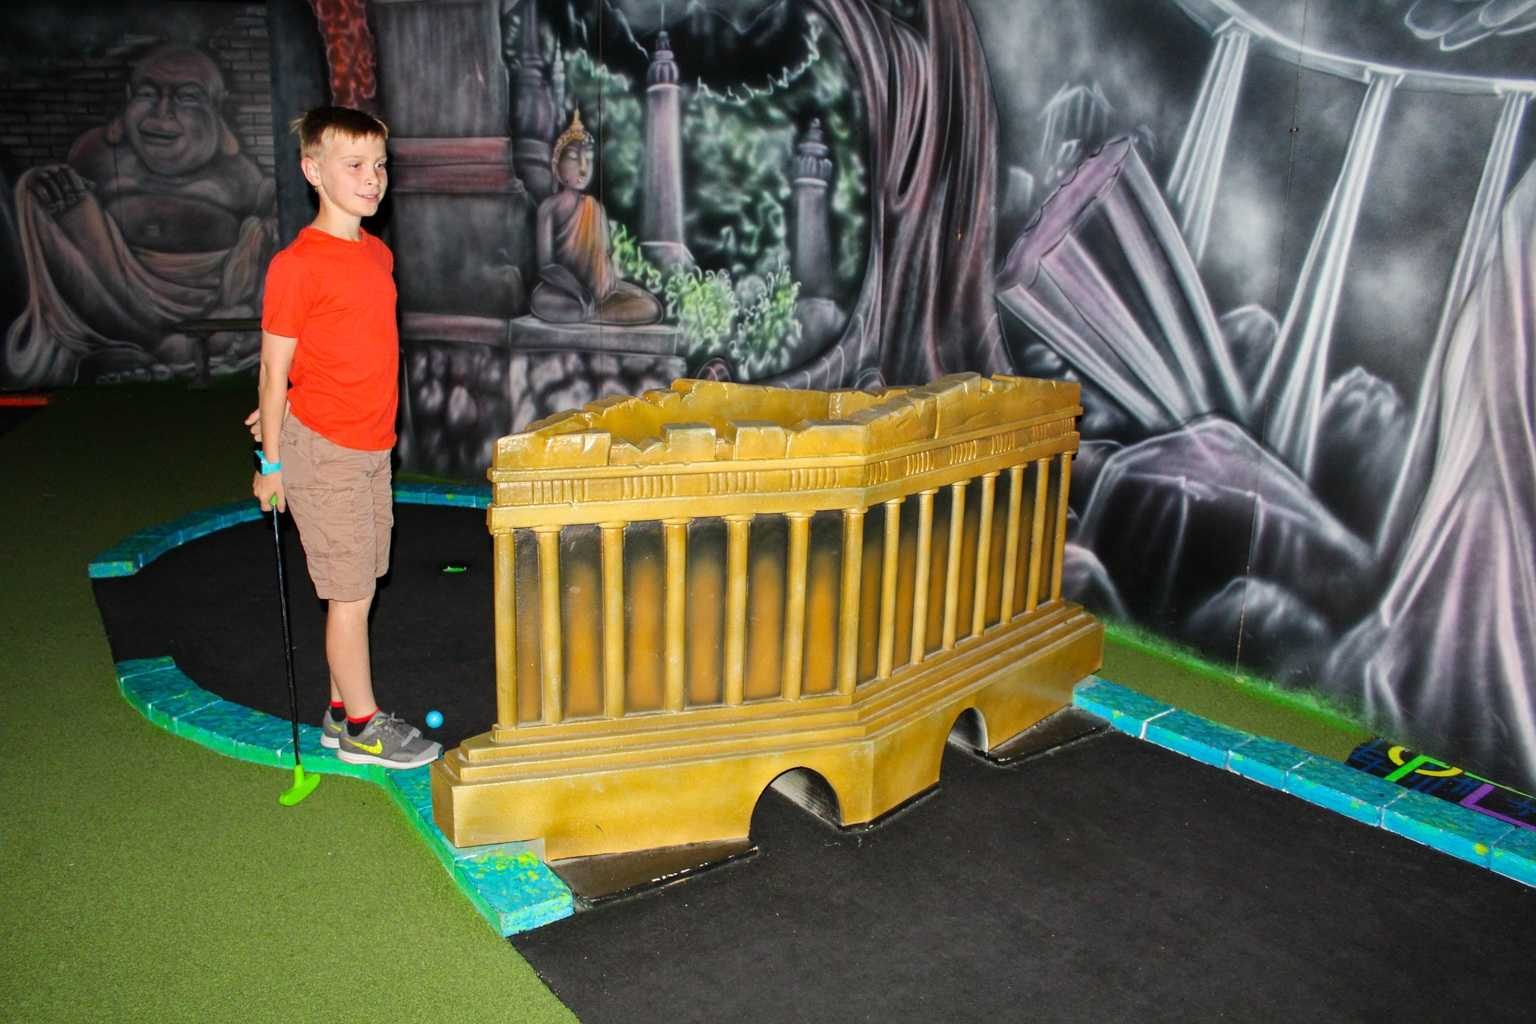 Get ready to experience miniature golf like never before! Glo Mini Golf in Riverside is a state of the art, indoor, glow in the dark mini golf course. The facility features hundreds of black lights that illuminate the course in a kaleidoscope colors! Travel the world with our 27 'World Wonder' themed holes. Go from the Great Pyramids of Egypt to the Running of the Bulls in Spain to Niagara Falls in New York all lit up by colorful glow in the dark paint.